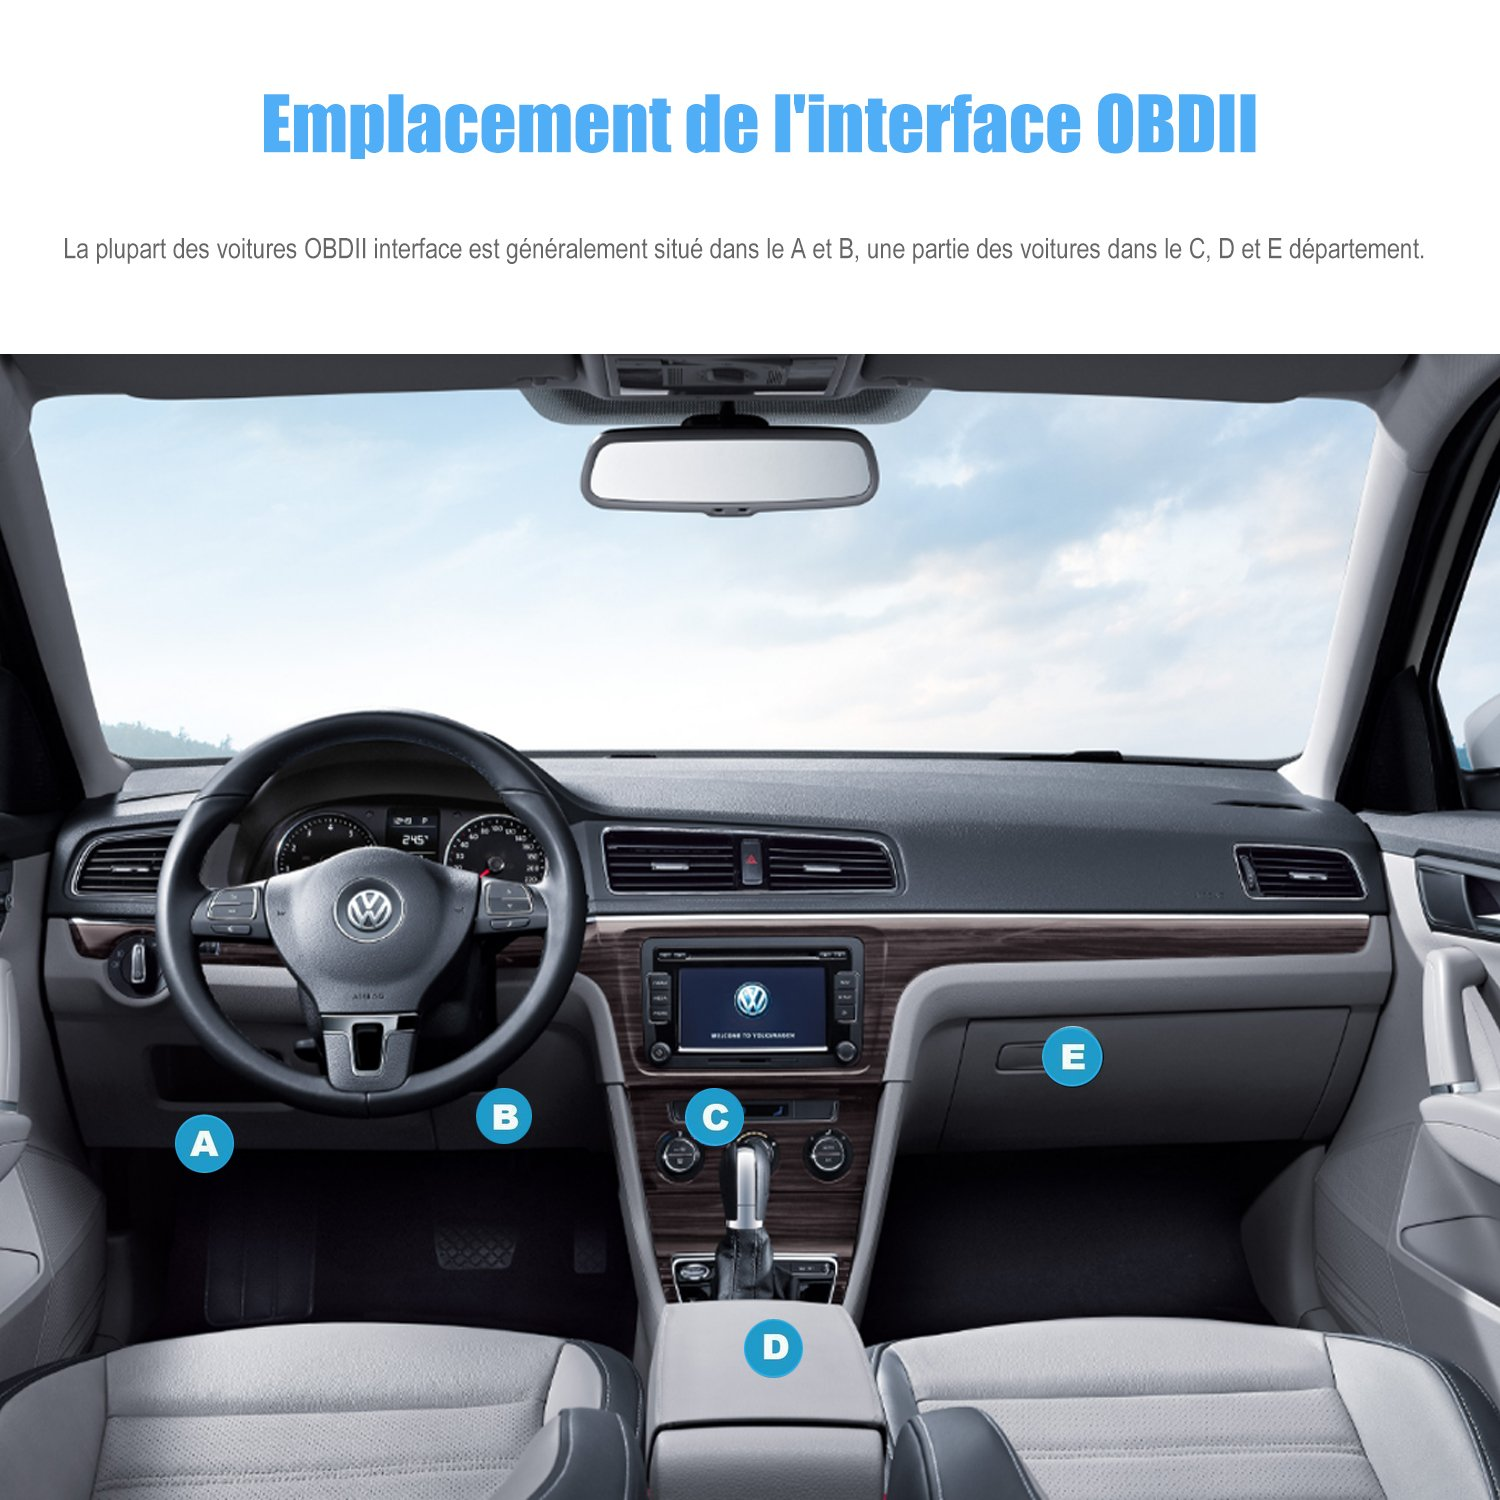 ieGeek OBD Bluetooth OBD2 Mini Adapter sans-Fil Voiture Diagnostique Scanner Outil iPhone /& Windows Dispositifs Relier Via Bluetooth 4.0 avec Android